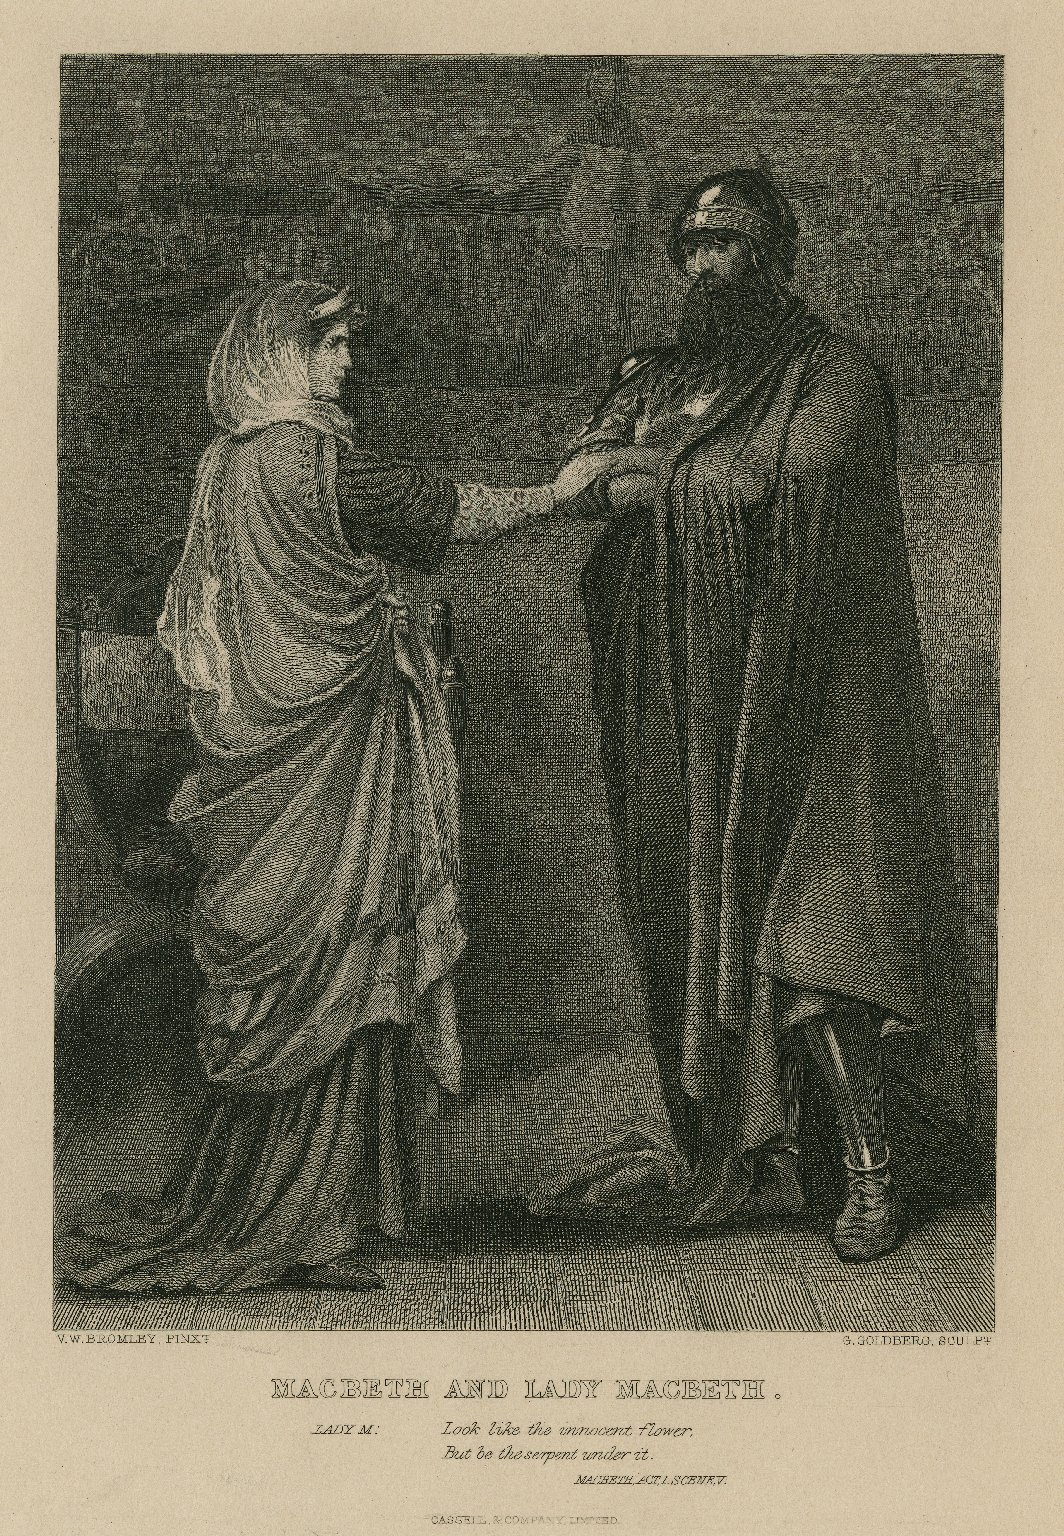 Macbeth and Lady Macbeth... Look like the innocent flower, but be the serpent under it, Macbeth, act 1, scene V [graphic] / V.W. Bromley, pinxt ; G. Goldberg, sculp.